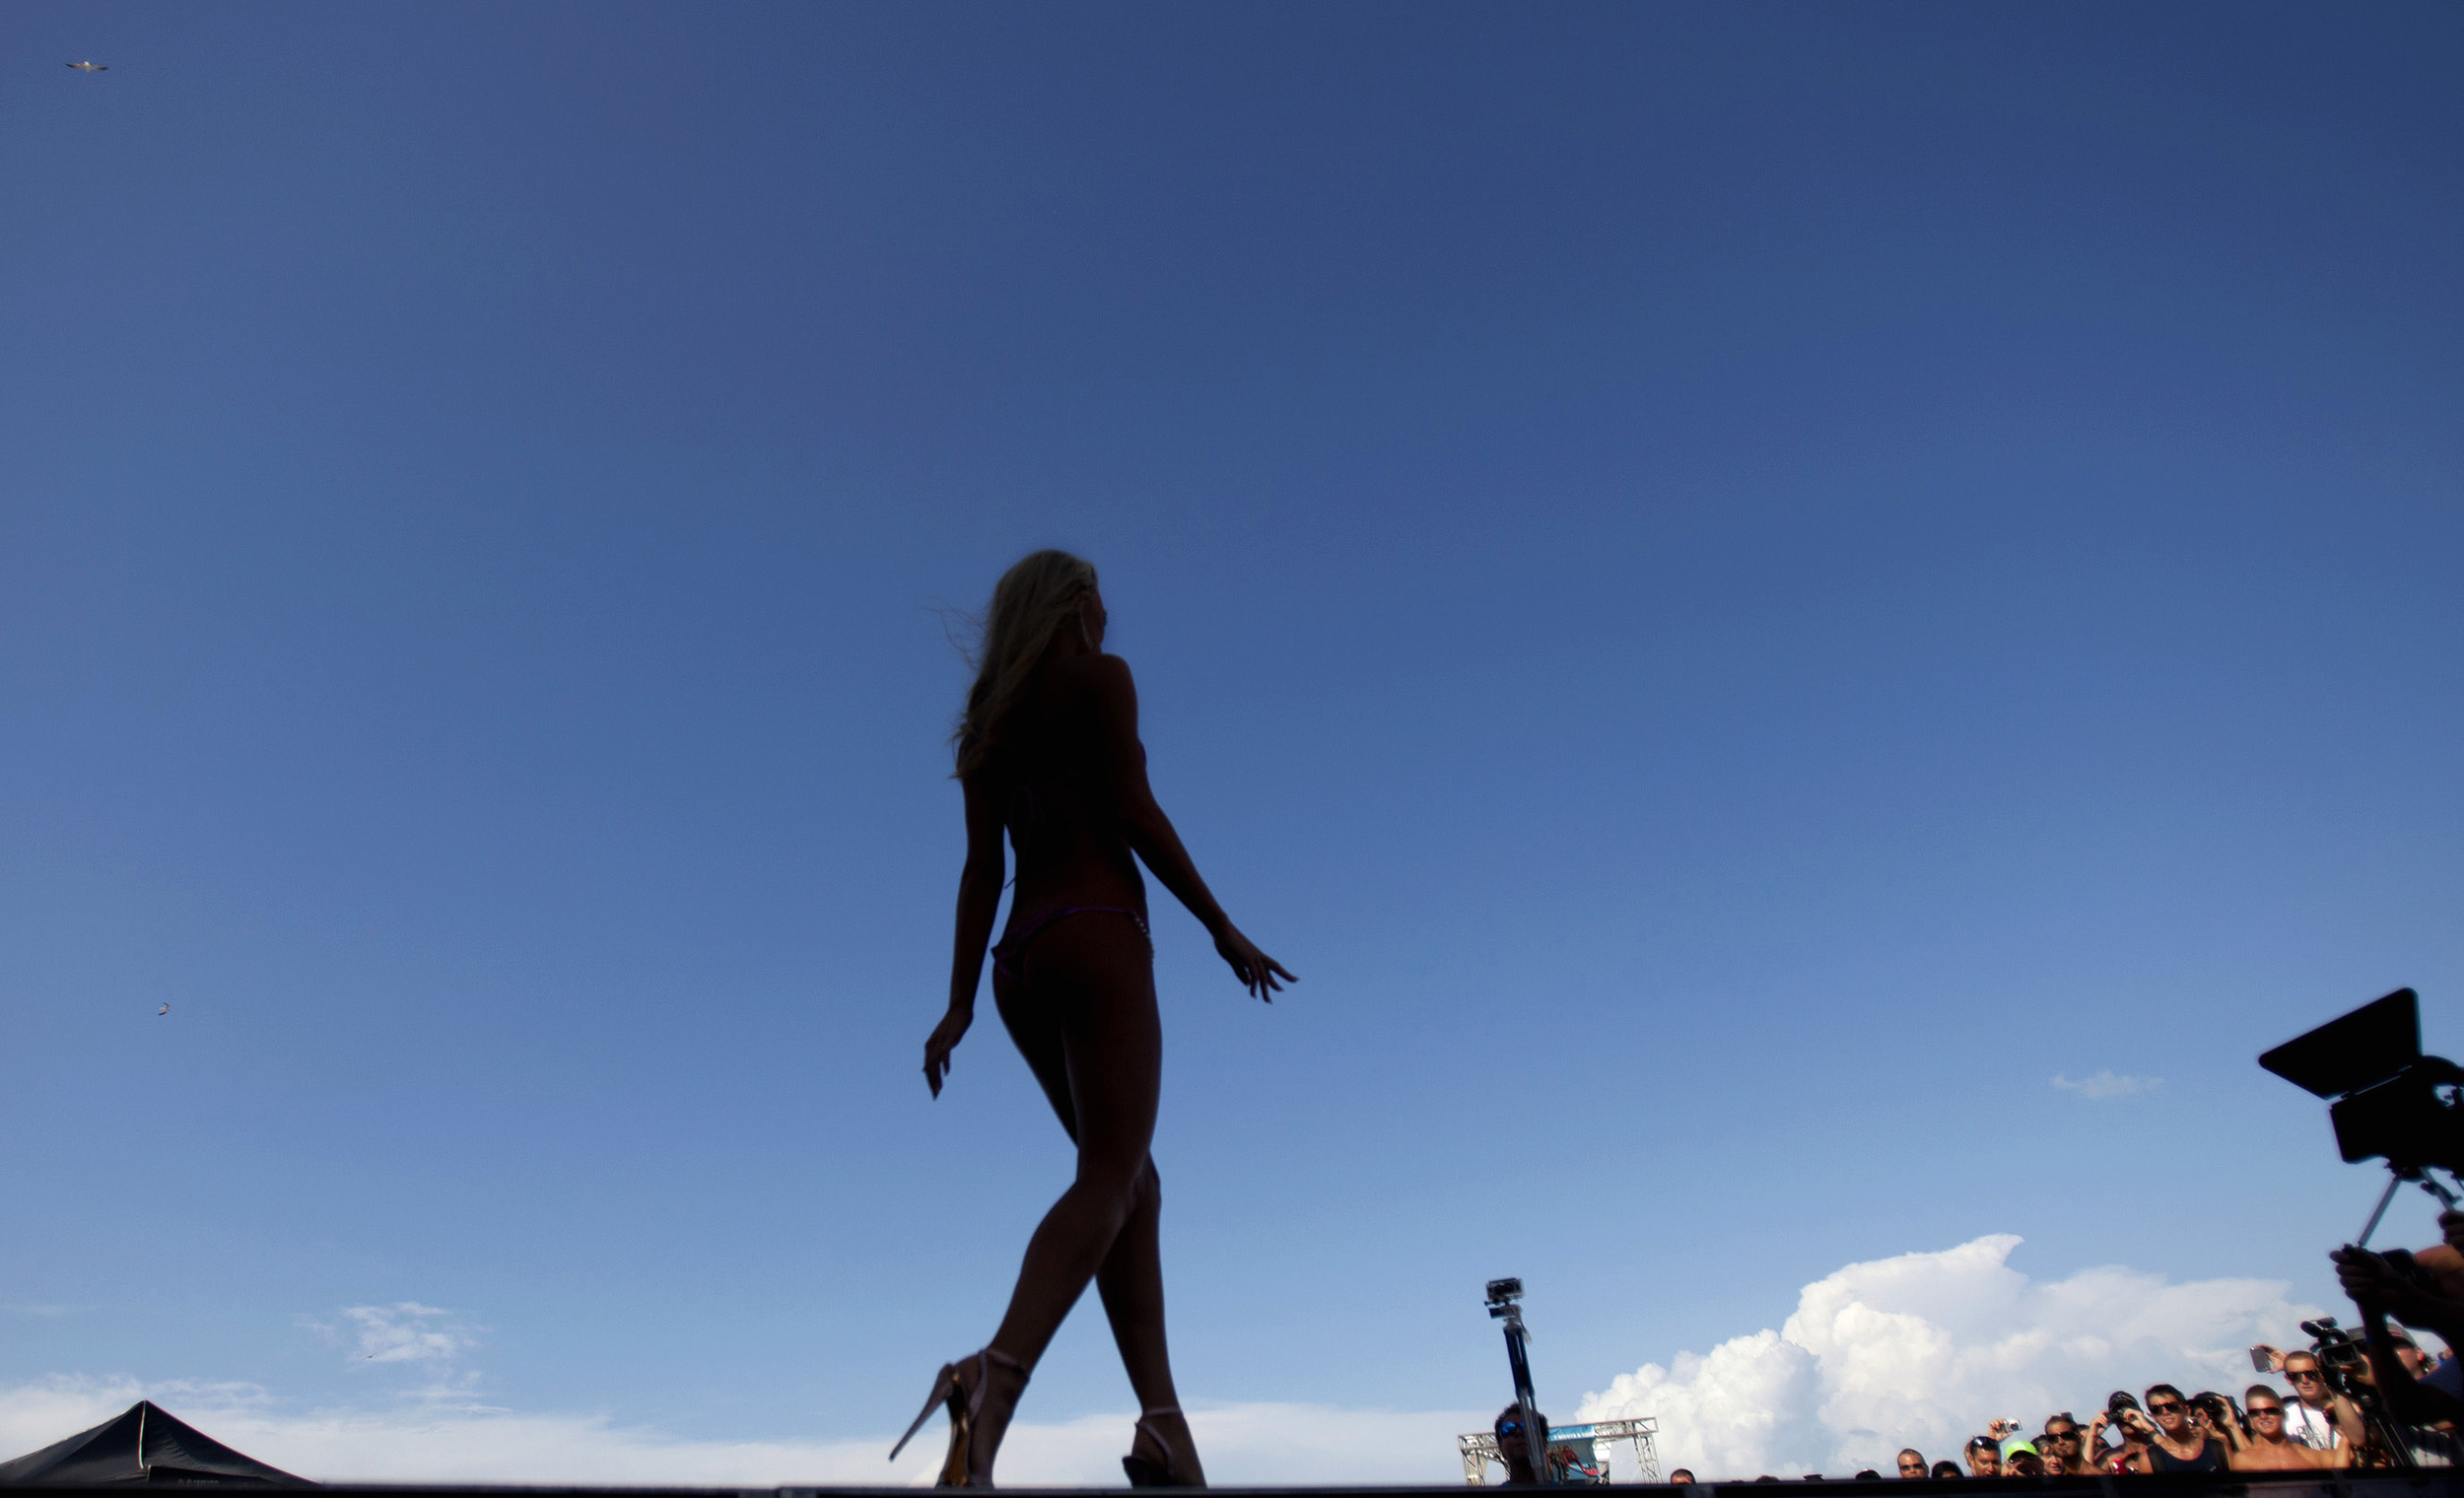 2012, Crowd gathers to watch the Miss Coastal Edge ECSC Swimsuit Pageant.